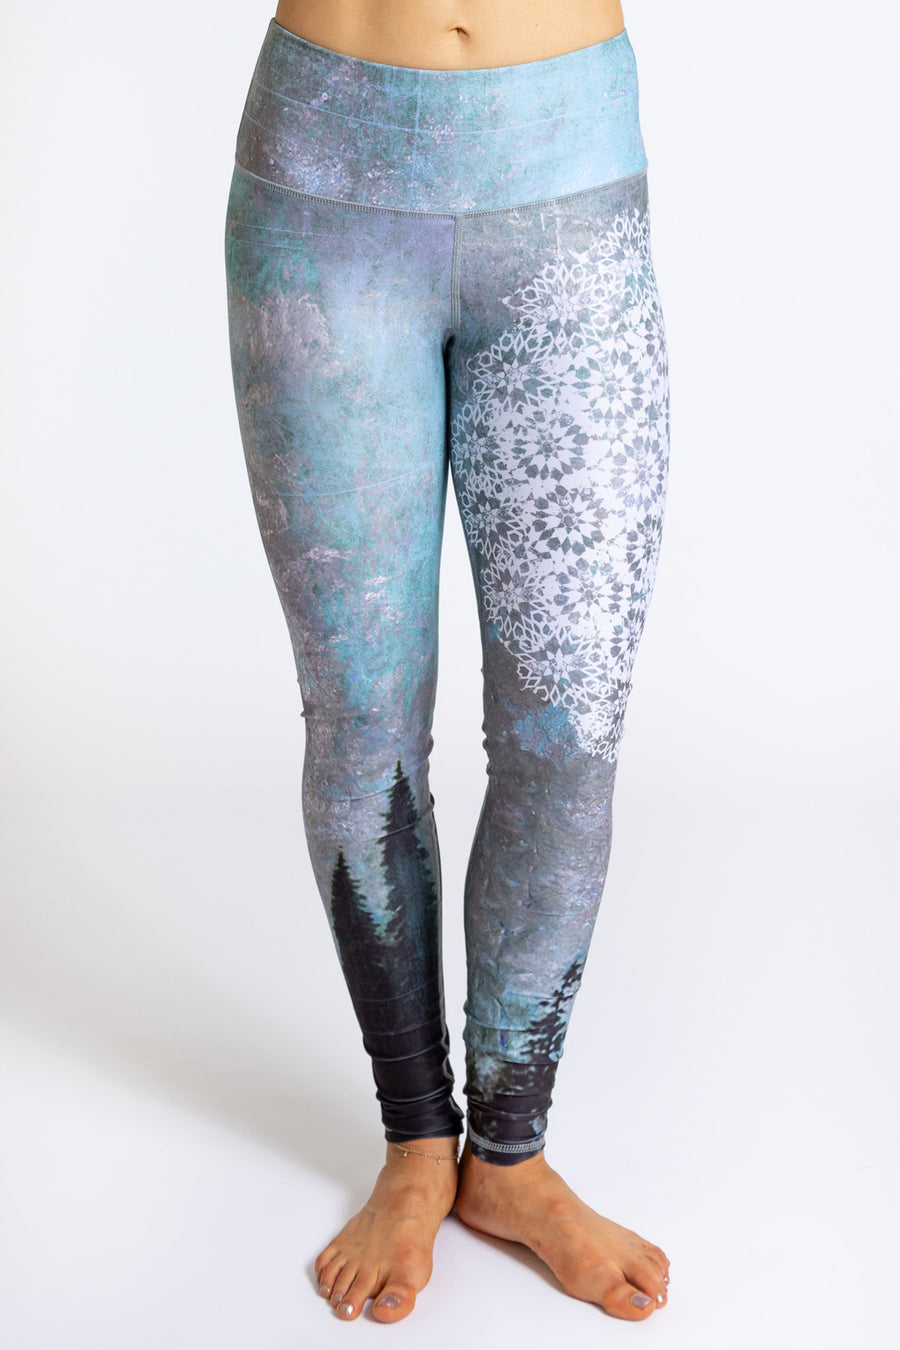 eec0a1f6756ab Sustainable & Eco Friendly Yoga Apparel & Leggings